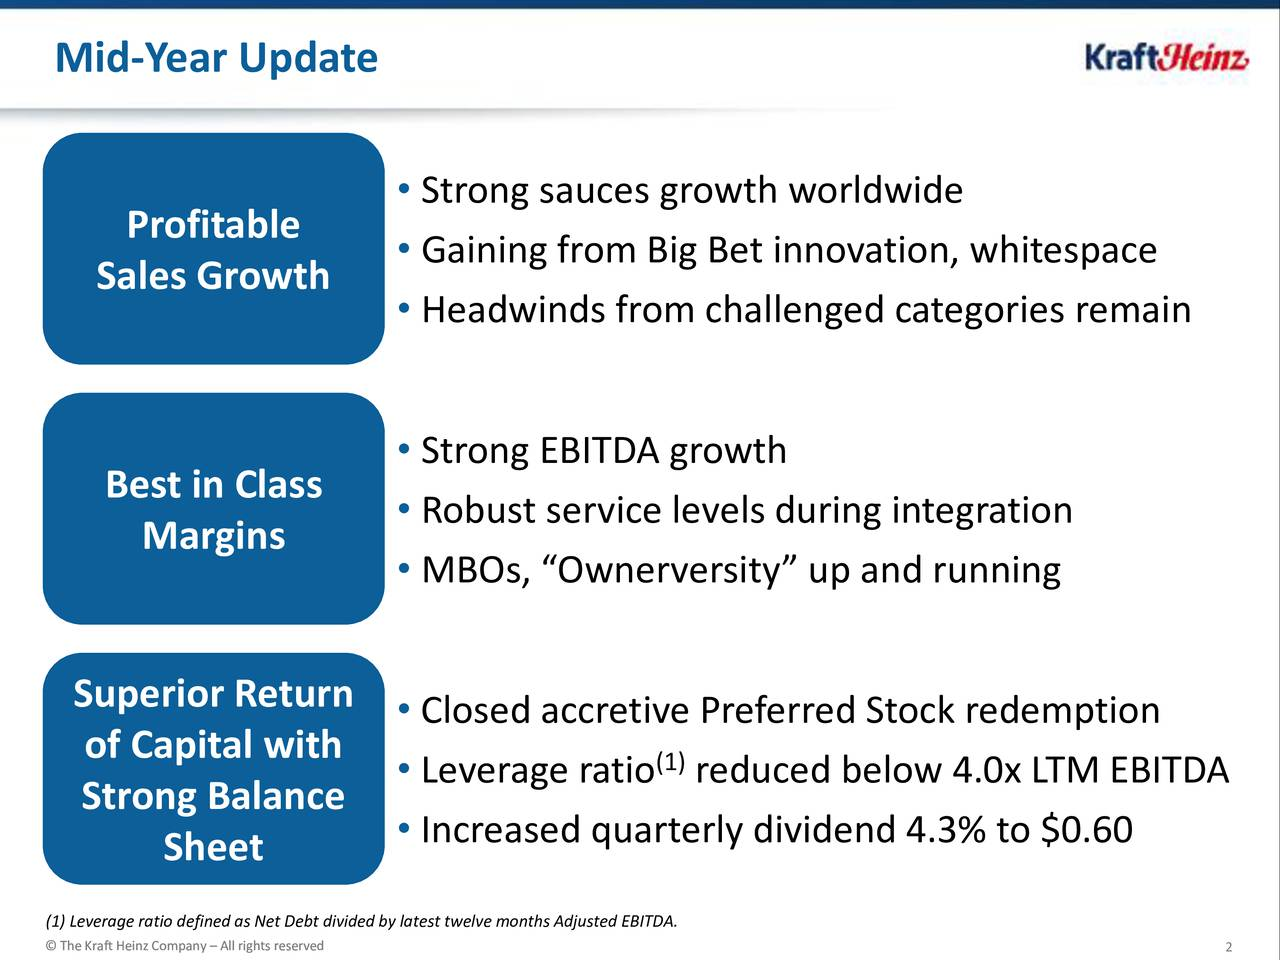 Strong sauces growth worldwide Profitable Gaining from Big Bet innovation, whitespace Sales Growth Headwinds from challenged categories remain Strong EBITDA growth Best in Class Robust service levels during integration Margins MBOs, Ownerversity up and running Superior Return  Closed accretive Preferred Stock redemption of Capital with (1) Leverage ratio reduced below 4.0x LTM EBITDA Strong Balance Increased quarterly dividend 4.3% to $0.60 Sheet (1) Leverage ratio defined as Net Debt divided by latest twelve months Adjusted EBITDA.